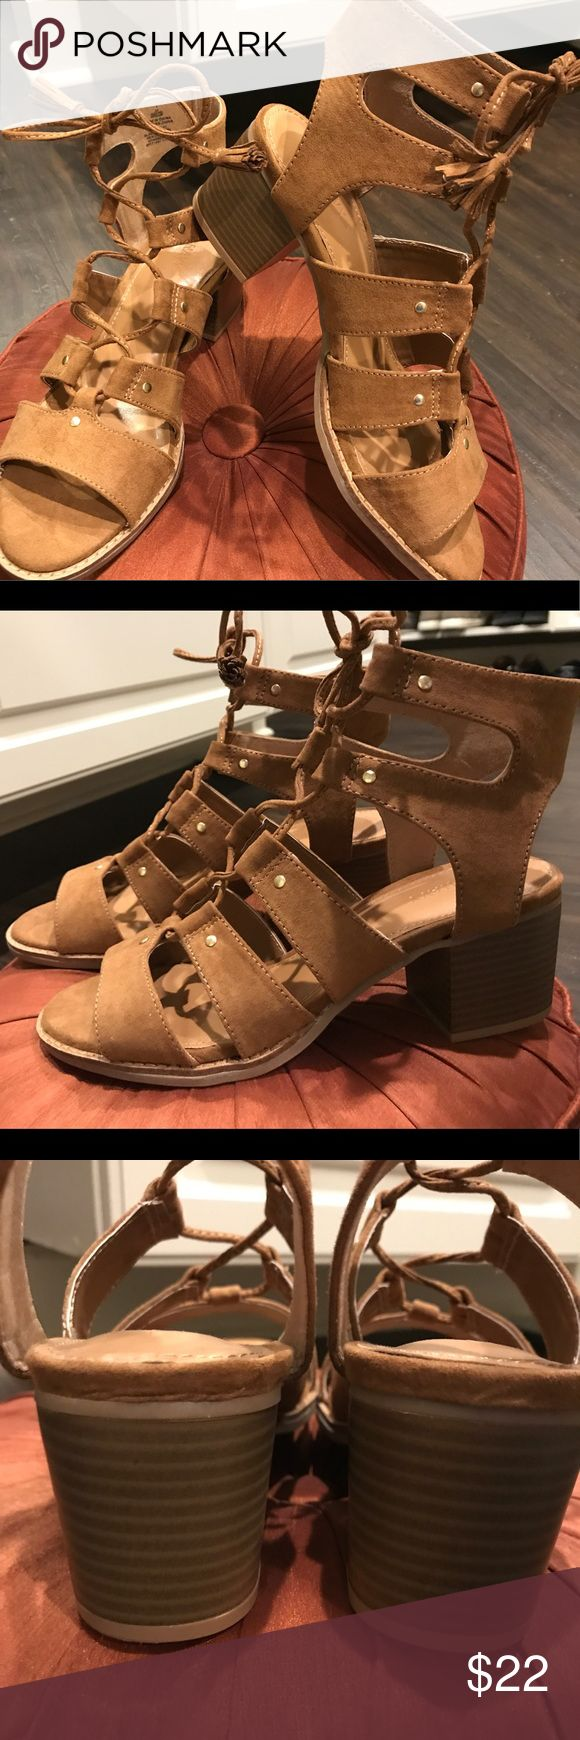 NEW Sz. 7 cognac suede tie sandals by Old Navy New, never worn tie up sandals by Old Navy. Size 7. (But I'm a 7 1/2 and they were fine) in cognac brown!! Perfect for summer and fall fashions! Old Navy Shoes